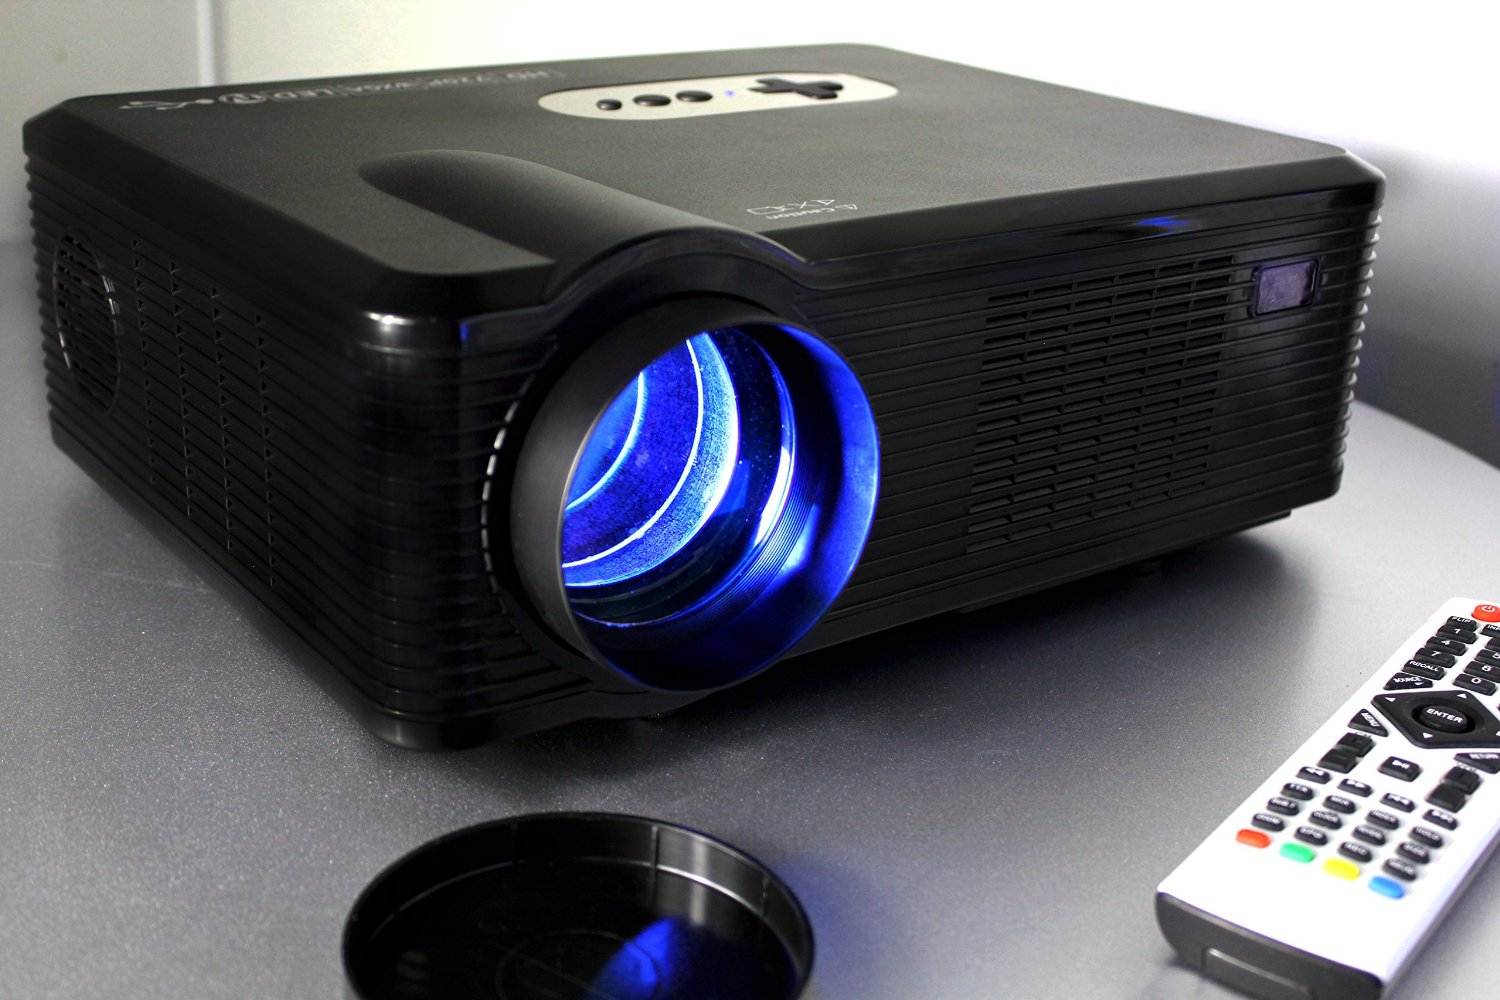 720P LED LCD Video Projector, Fugetek FG-857, Powerful Home Theater Cinema projector, Extended Life LED Lighting Technology, Features Multi Inputs - 2-HDMI, 2-USB, VGA, YPBPR, 1280x800 Native Resolution, Multi Device Compatible: DVD, TV, PC, Game Consoles, 4:3/16:9 Aspect Ratio,Black, Sleek Design,